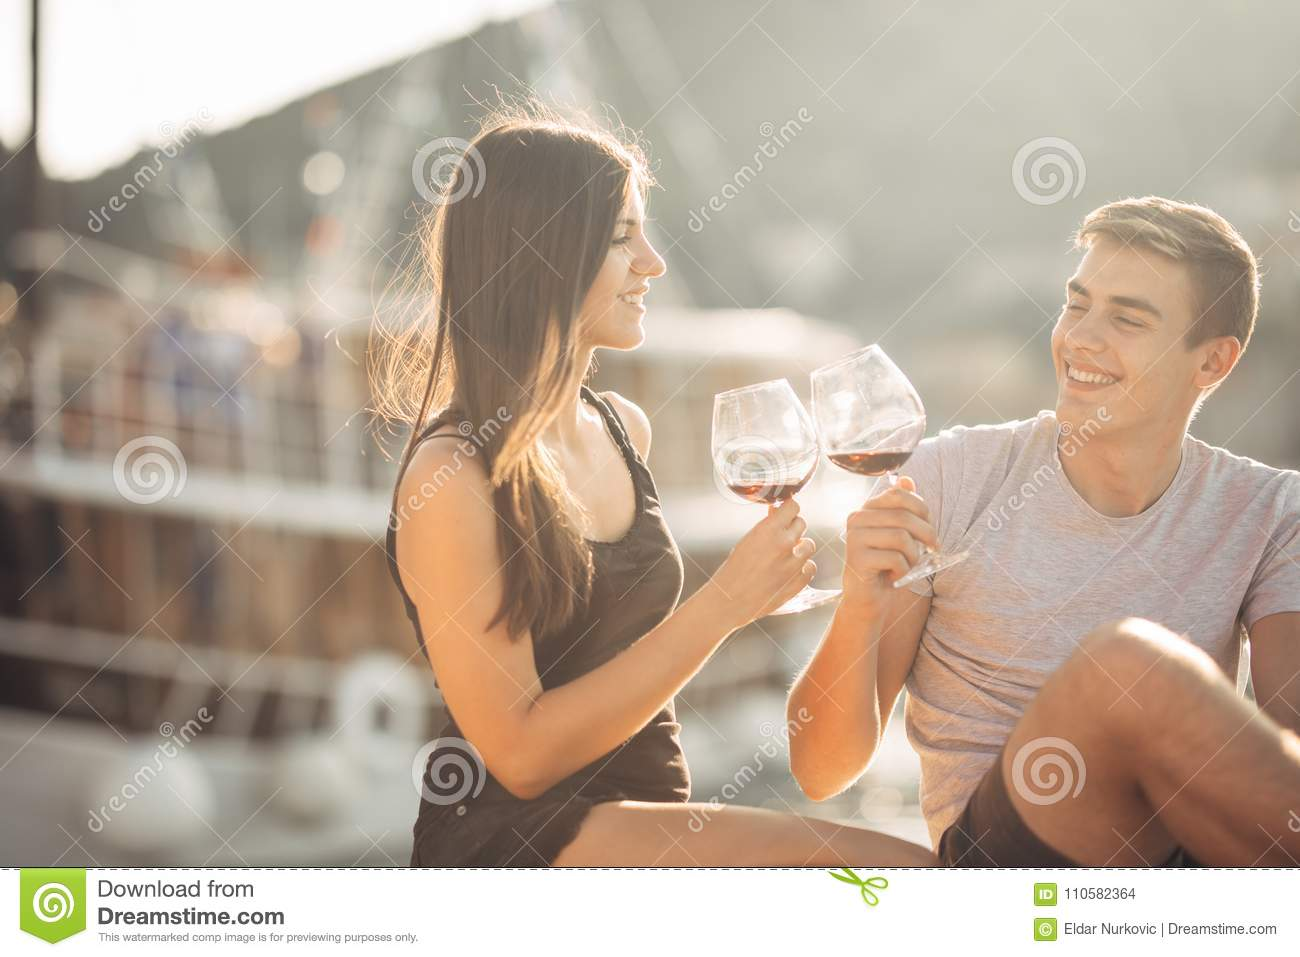 Romantic couple drinking wine at sunset.Romance.Two people having a romantic evening with a glass of wine near the sea.Cruise ship